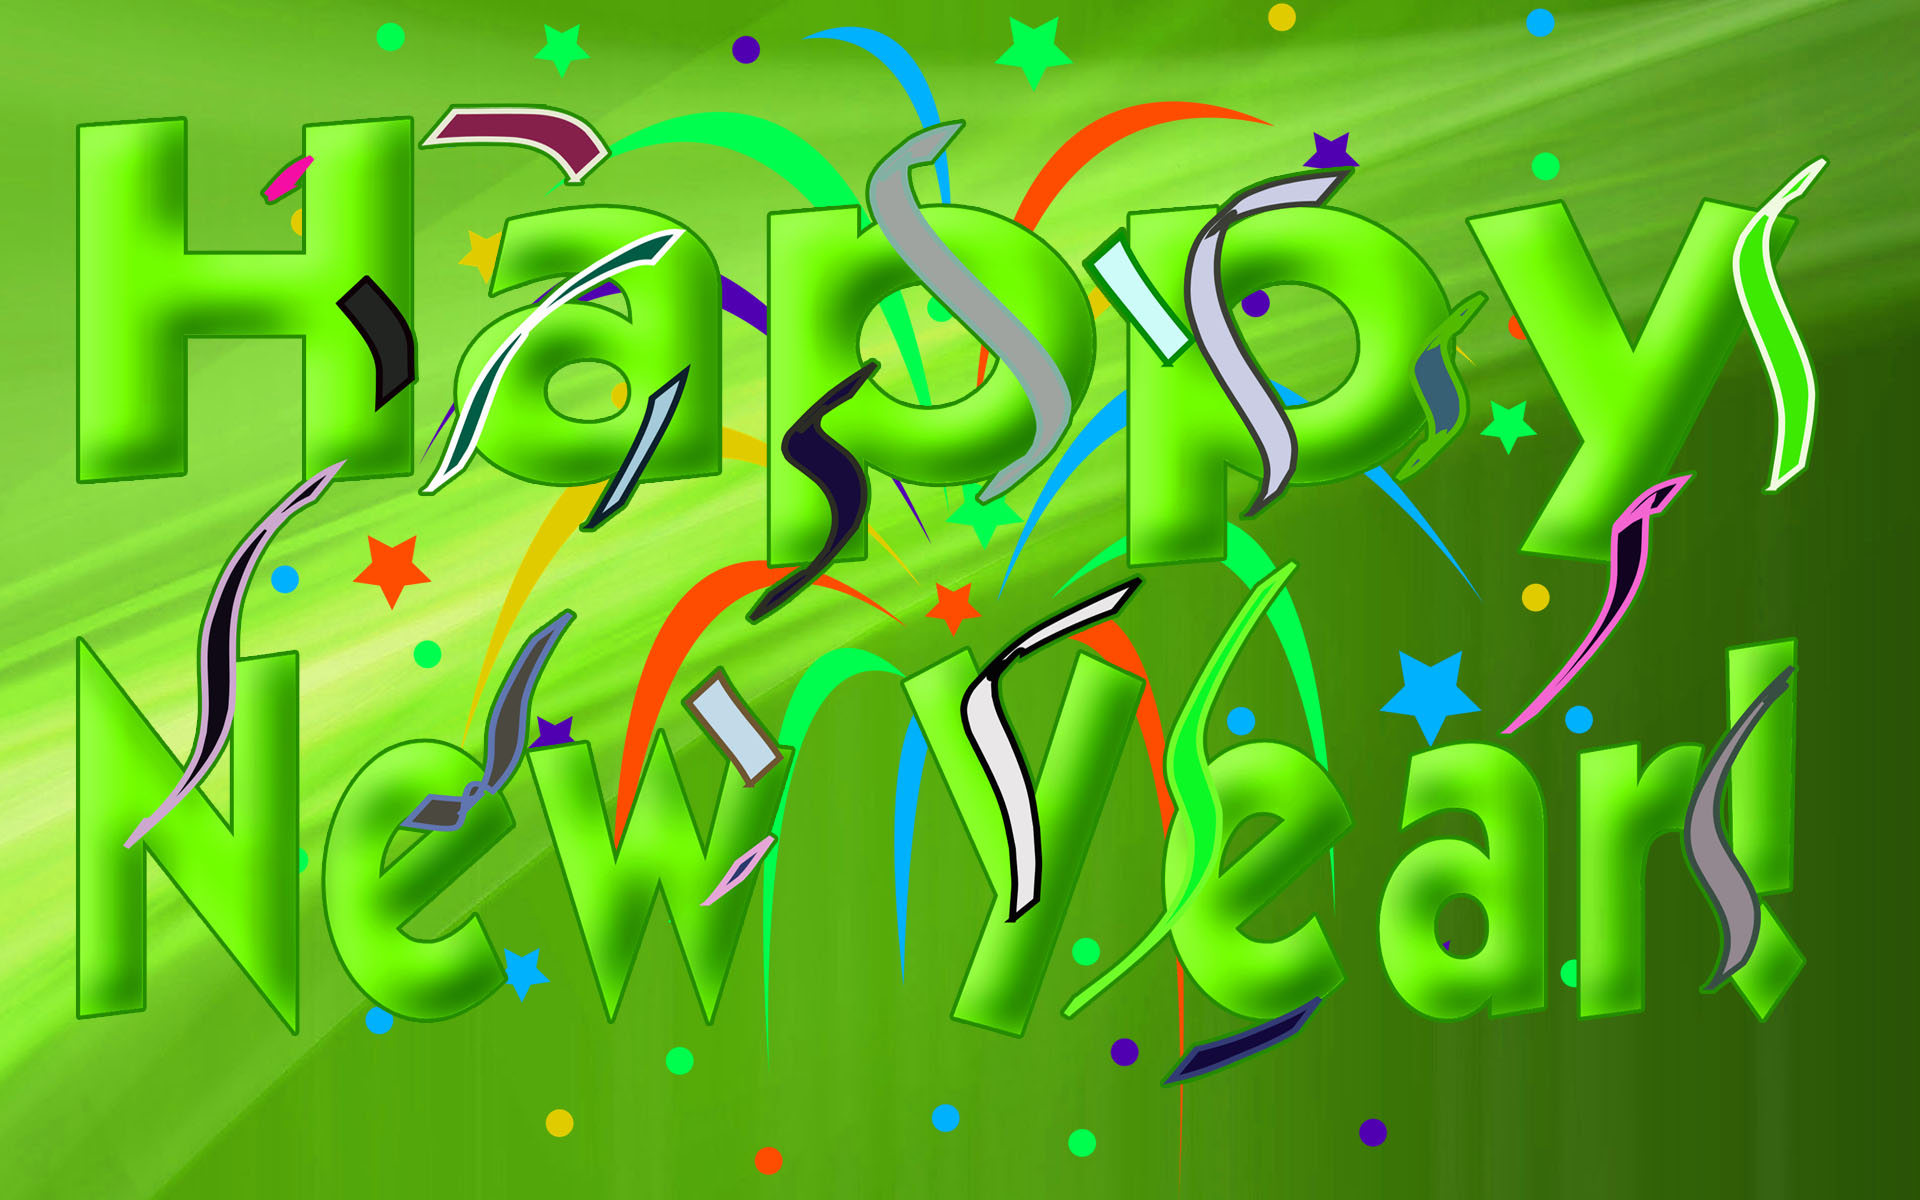 happy new year greetings wishes hd pc desktop latest wallpaper